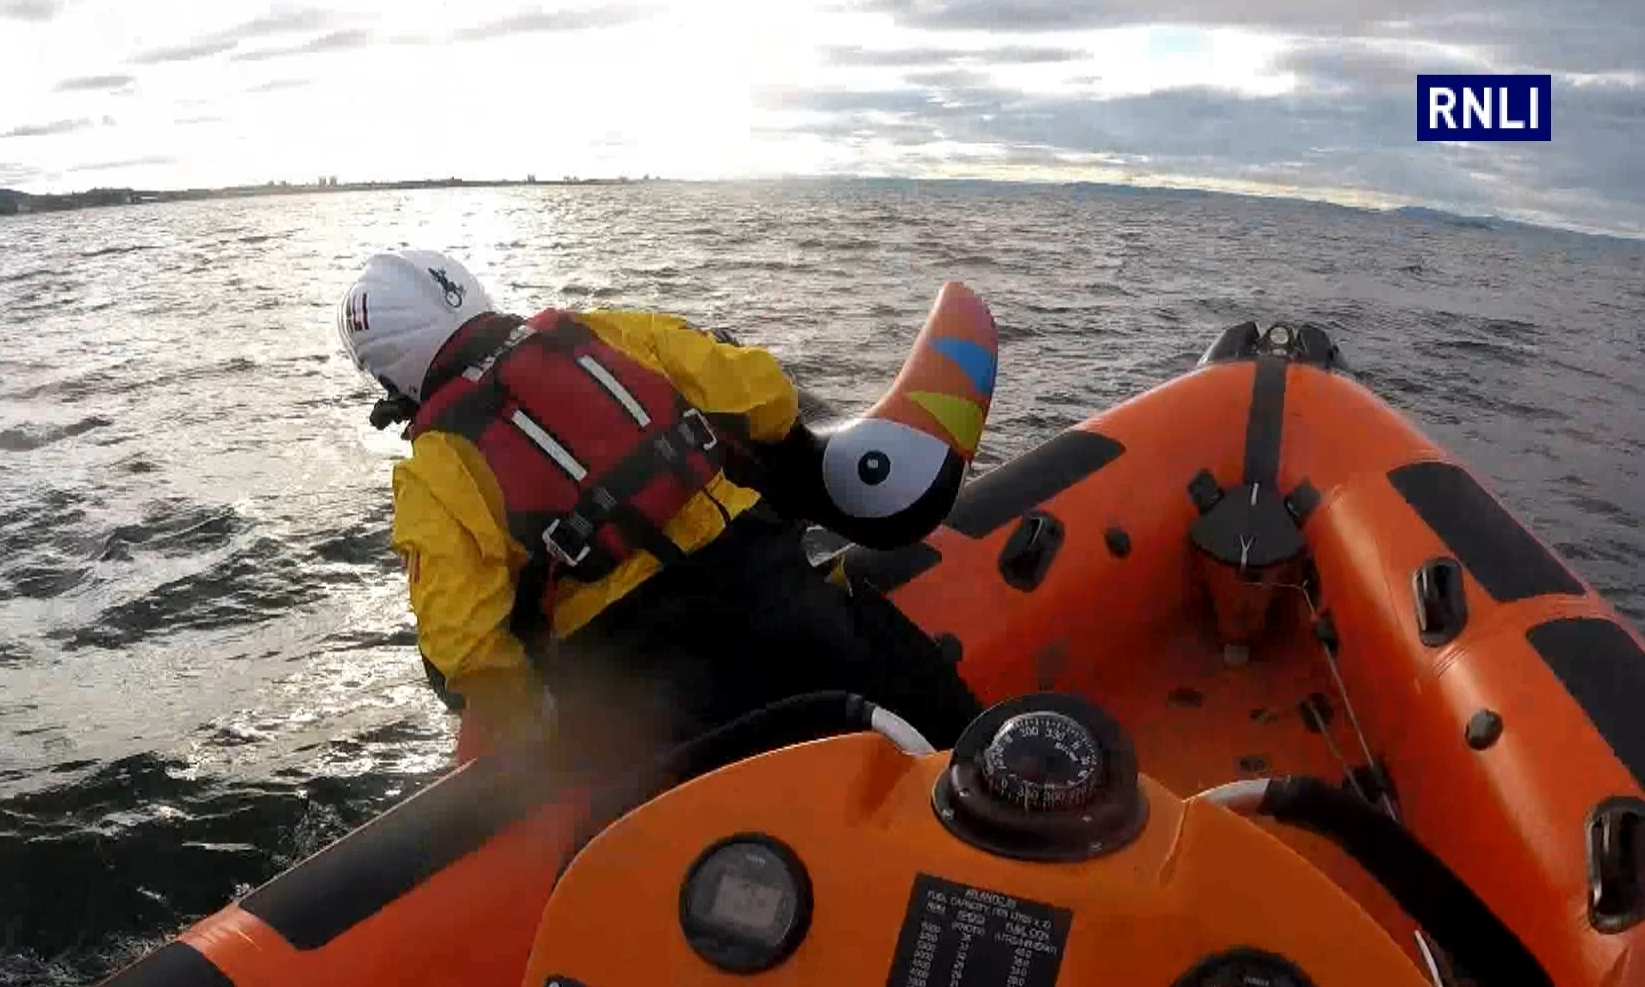 RNLI crews responding to an alert off Portobello. Thankfully, this one turned out to be a false alarm.